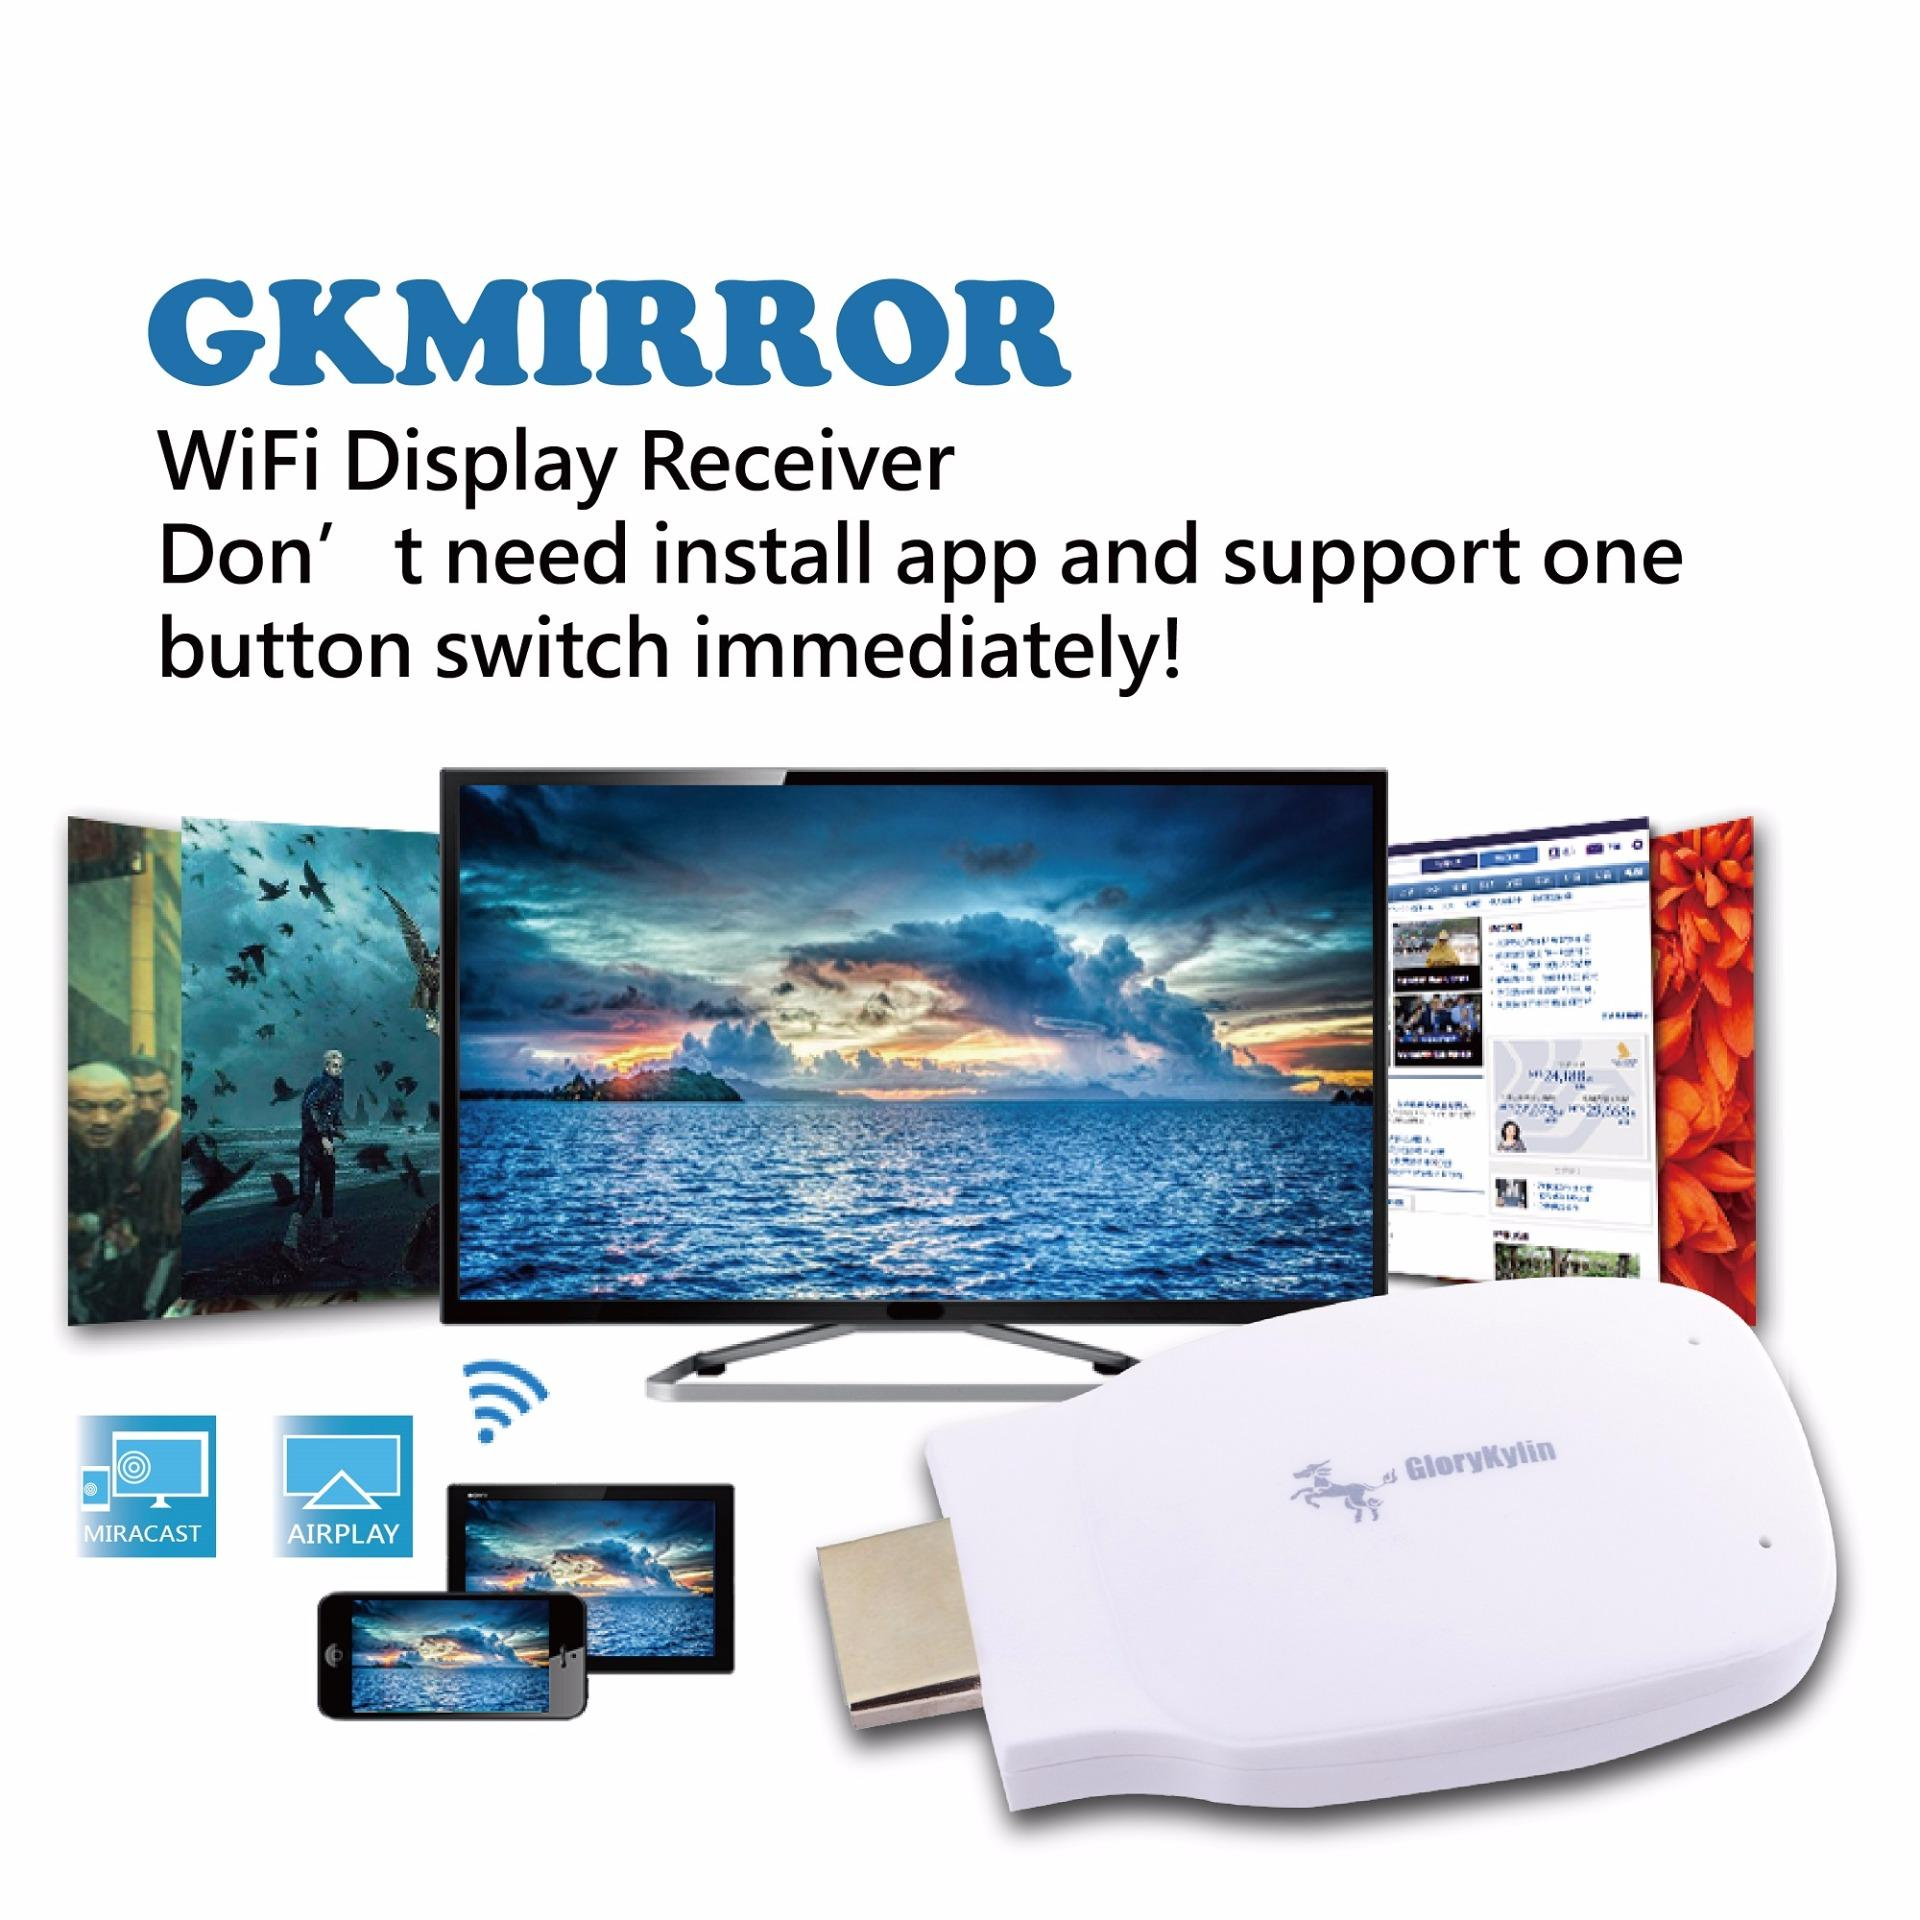 Philippines Ezcast Gkmirror Chromecast Digital Hdmi Streamer Hd Anycast Wifi Display Receiver Dongle Wireless Mirroring Media Chrome Cast For Youtube Airplay Miracast Usa